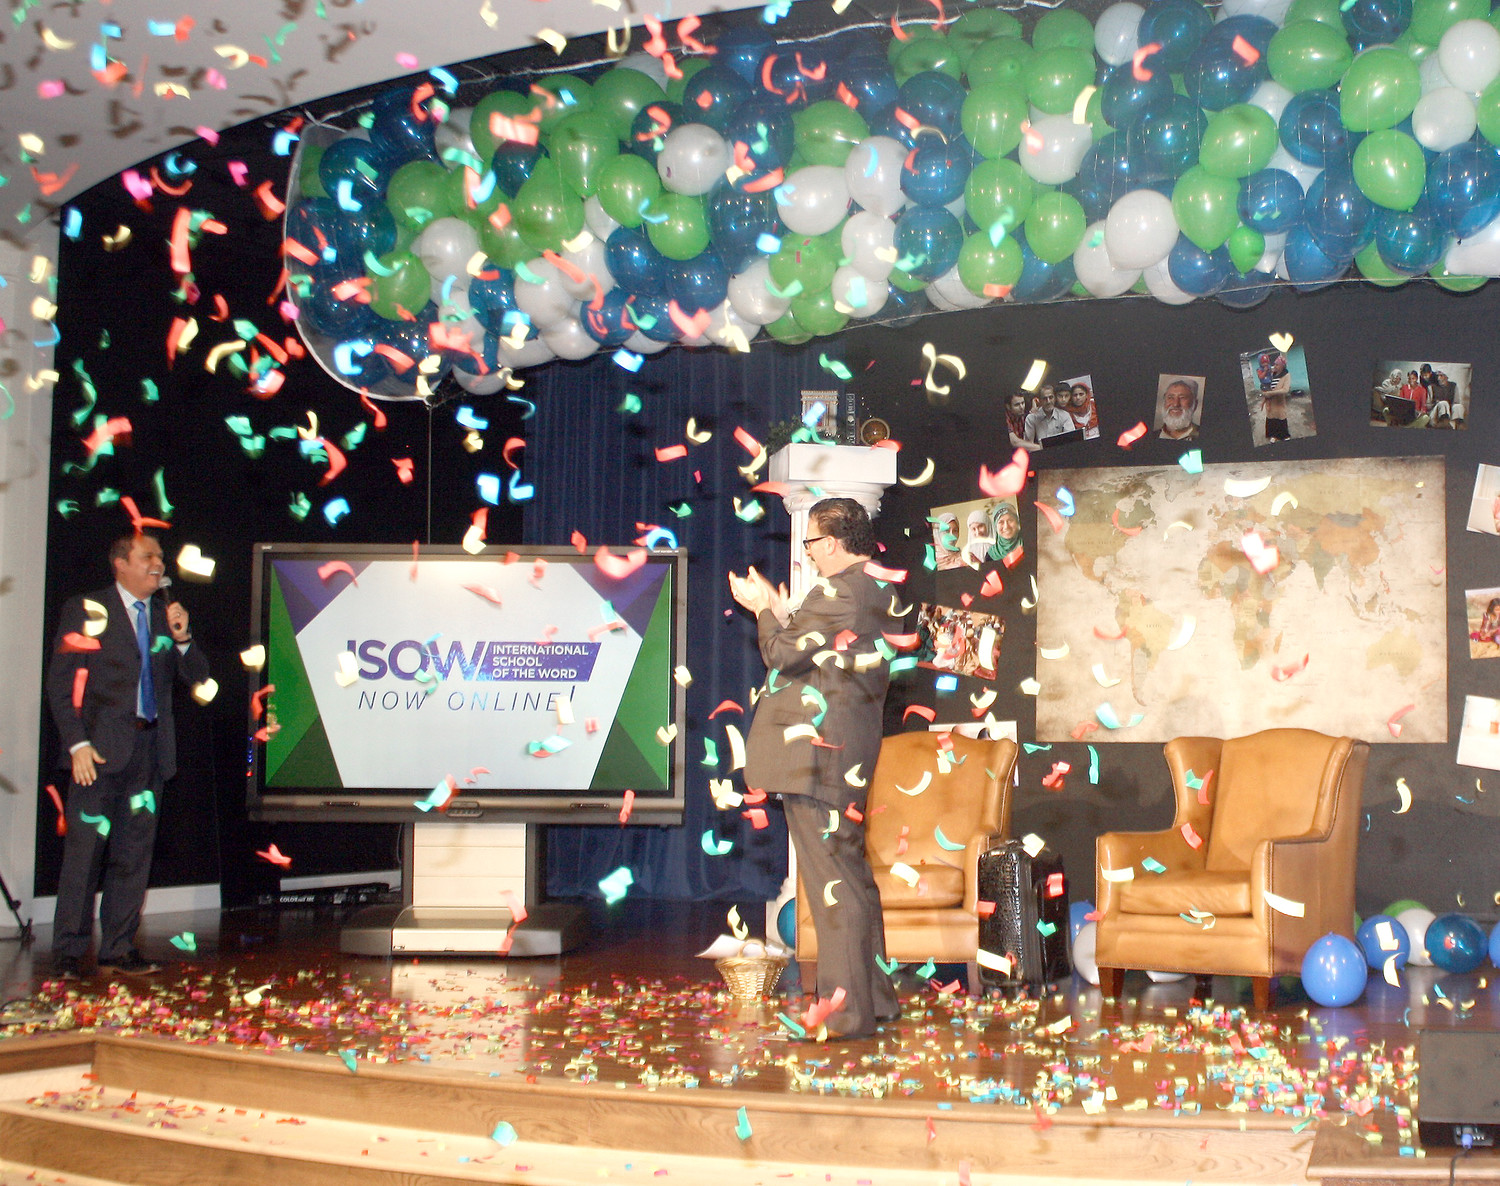 THE CONFETTI WAS flying, with balloons overhead, at Monday's launch of a new, online international bible college in Cleveland.  Leading the new educational venture will be Dr. Bryan Cutshall, left, and the Rec. Perry Stone, both shrouded in confetti.